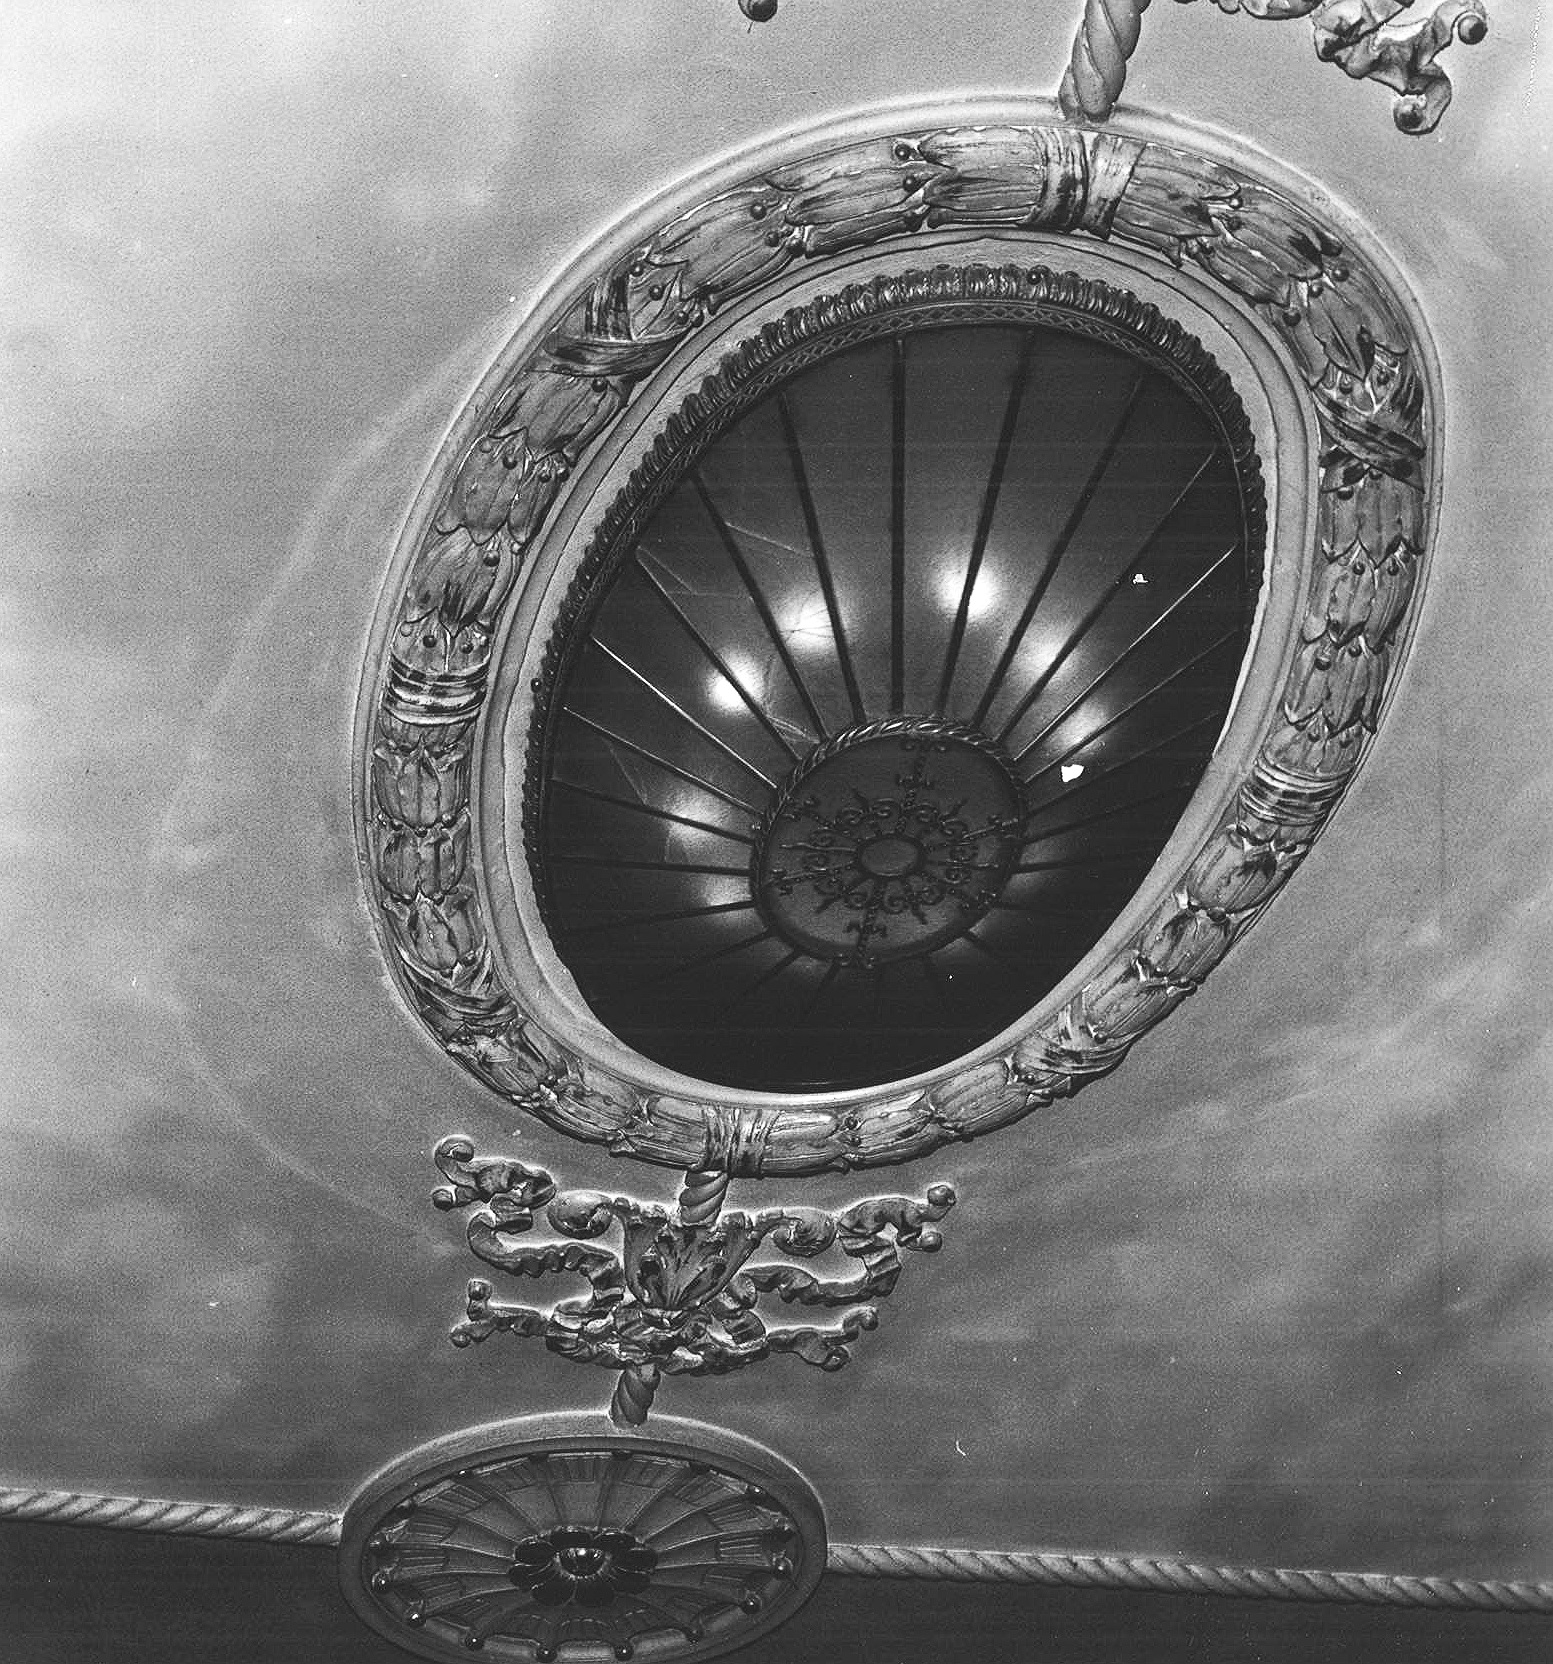 UNDER BALCONY CEILING DETAIL (Date Unknown)